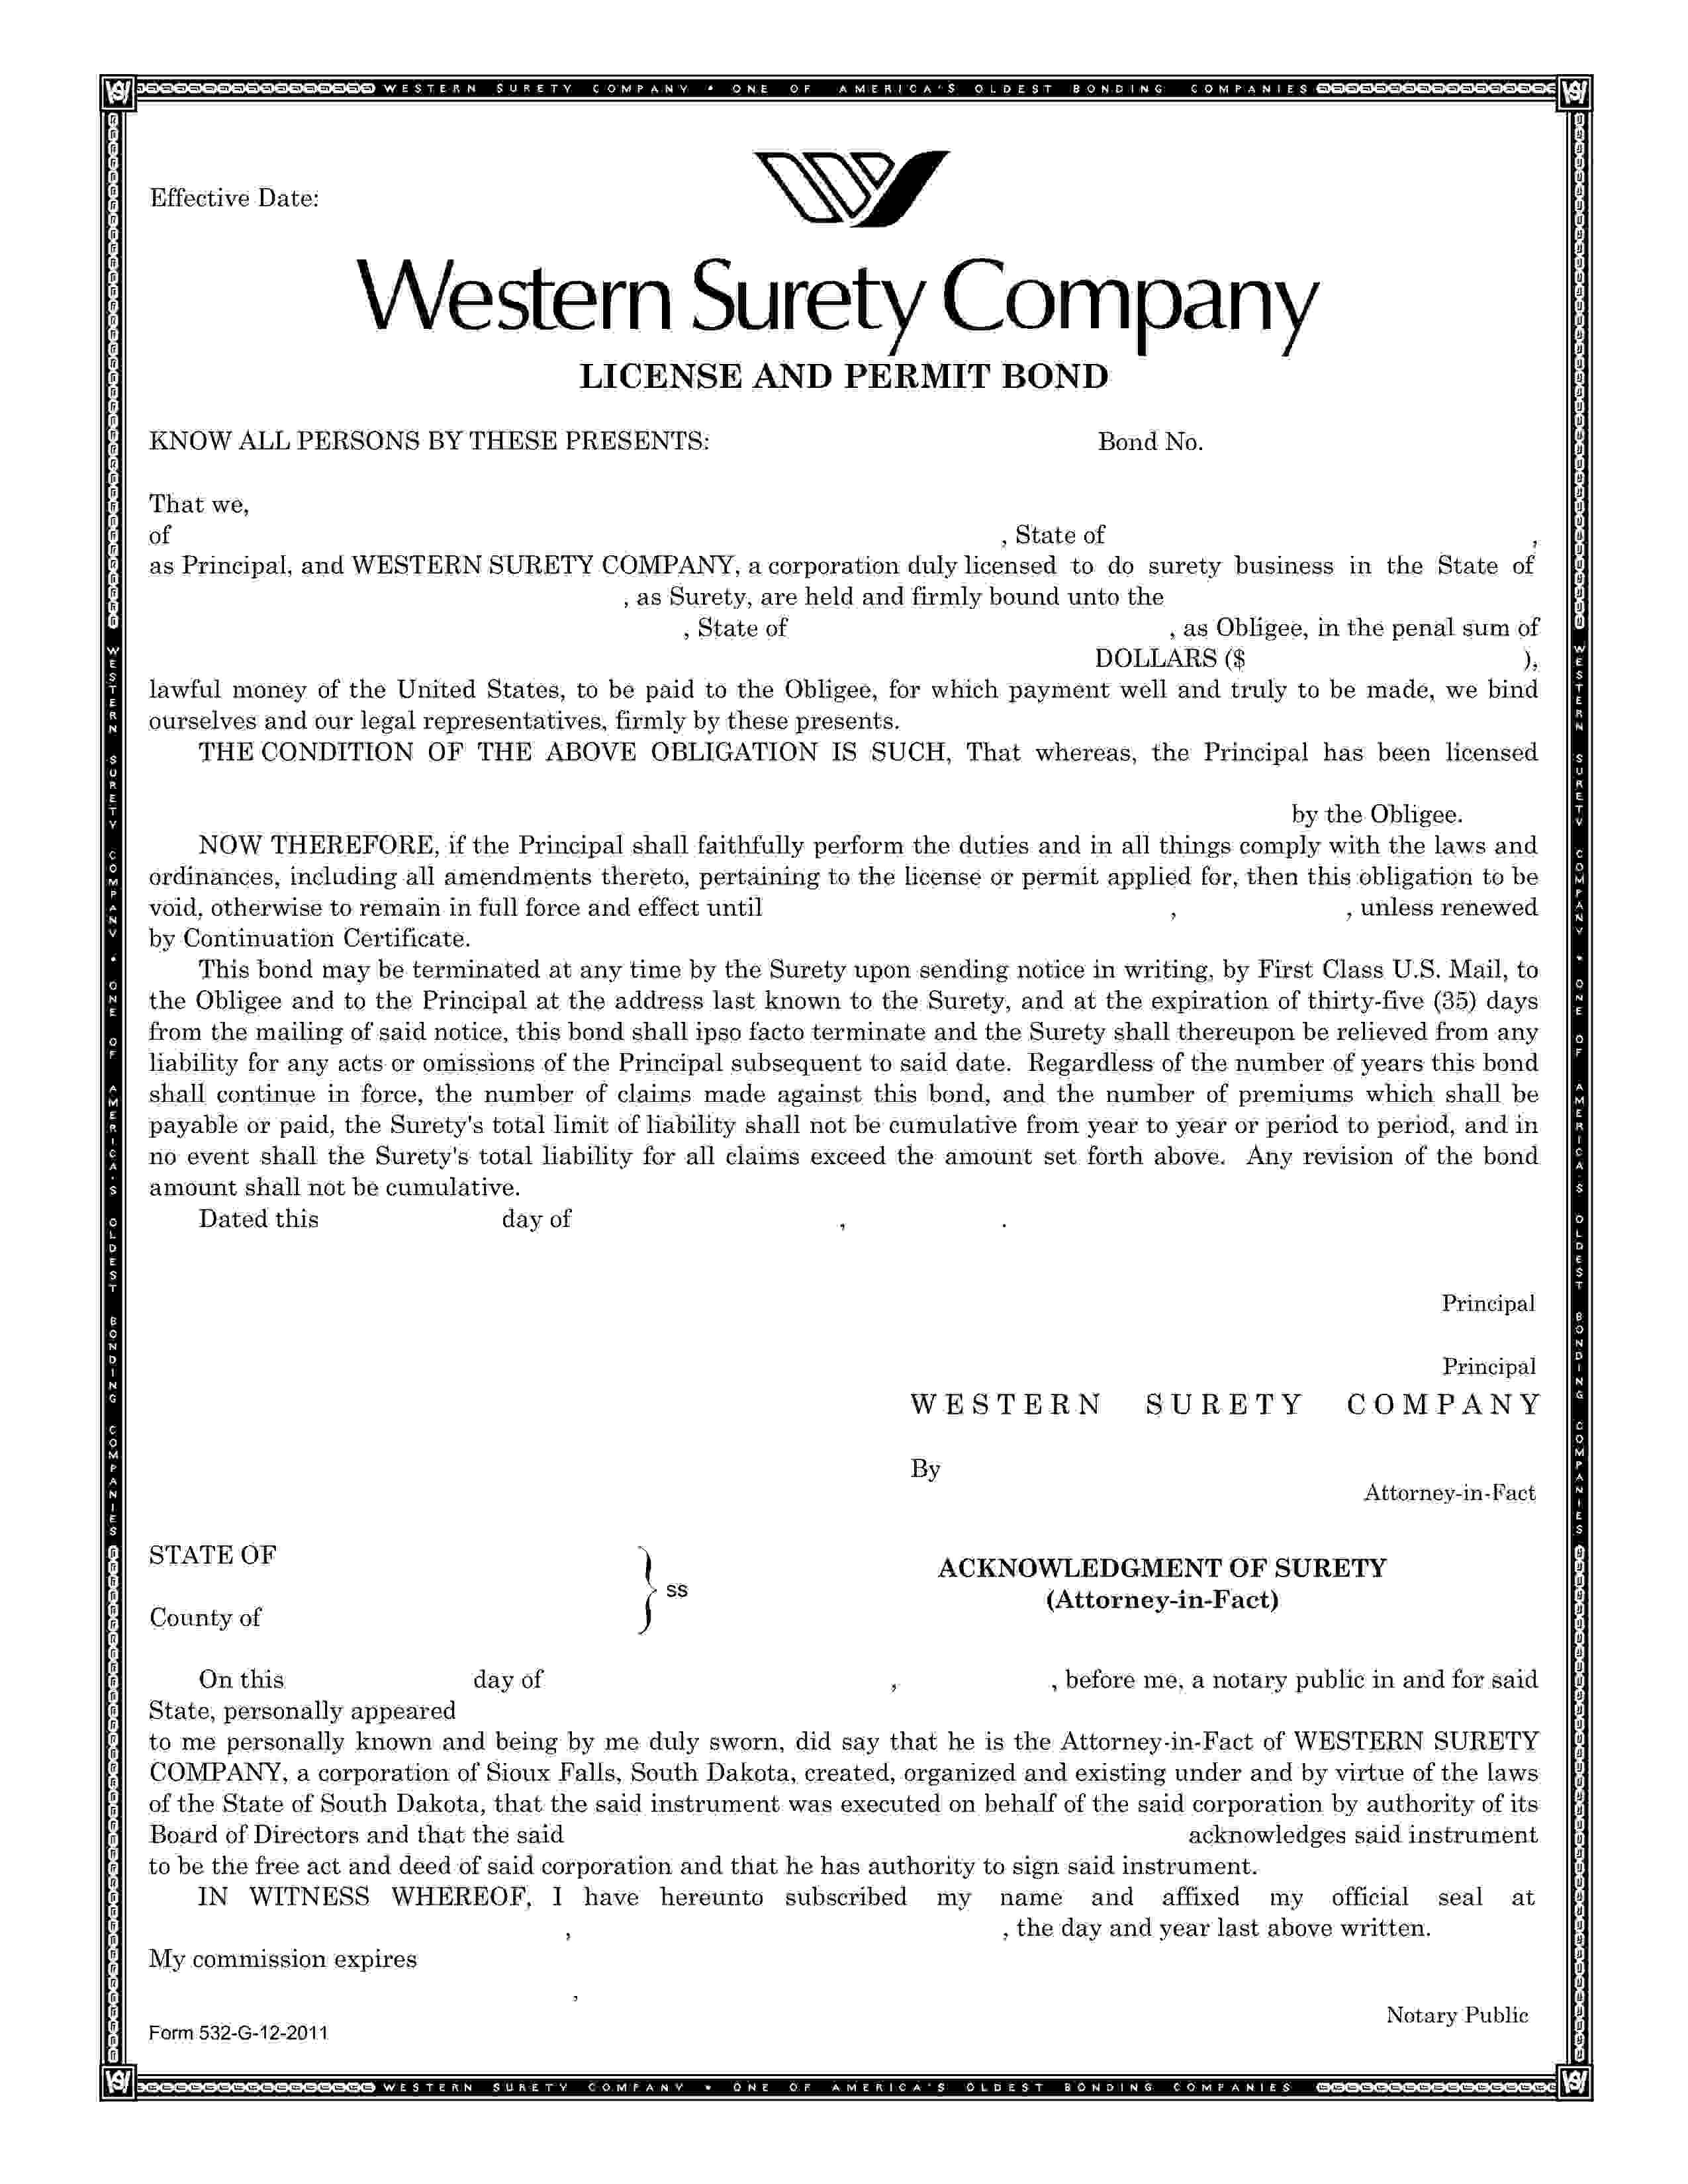 Lawrence - City License/Permit sample image